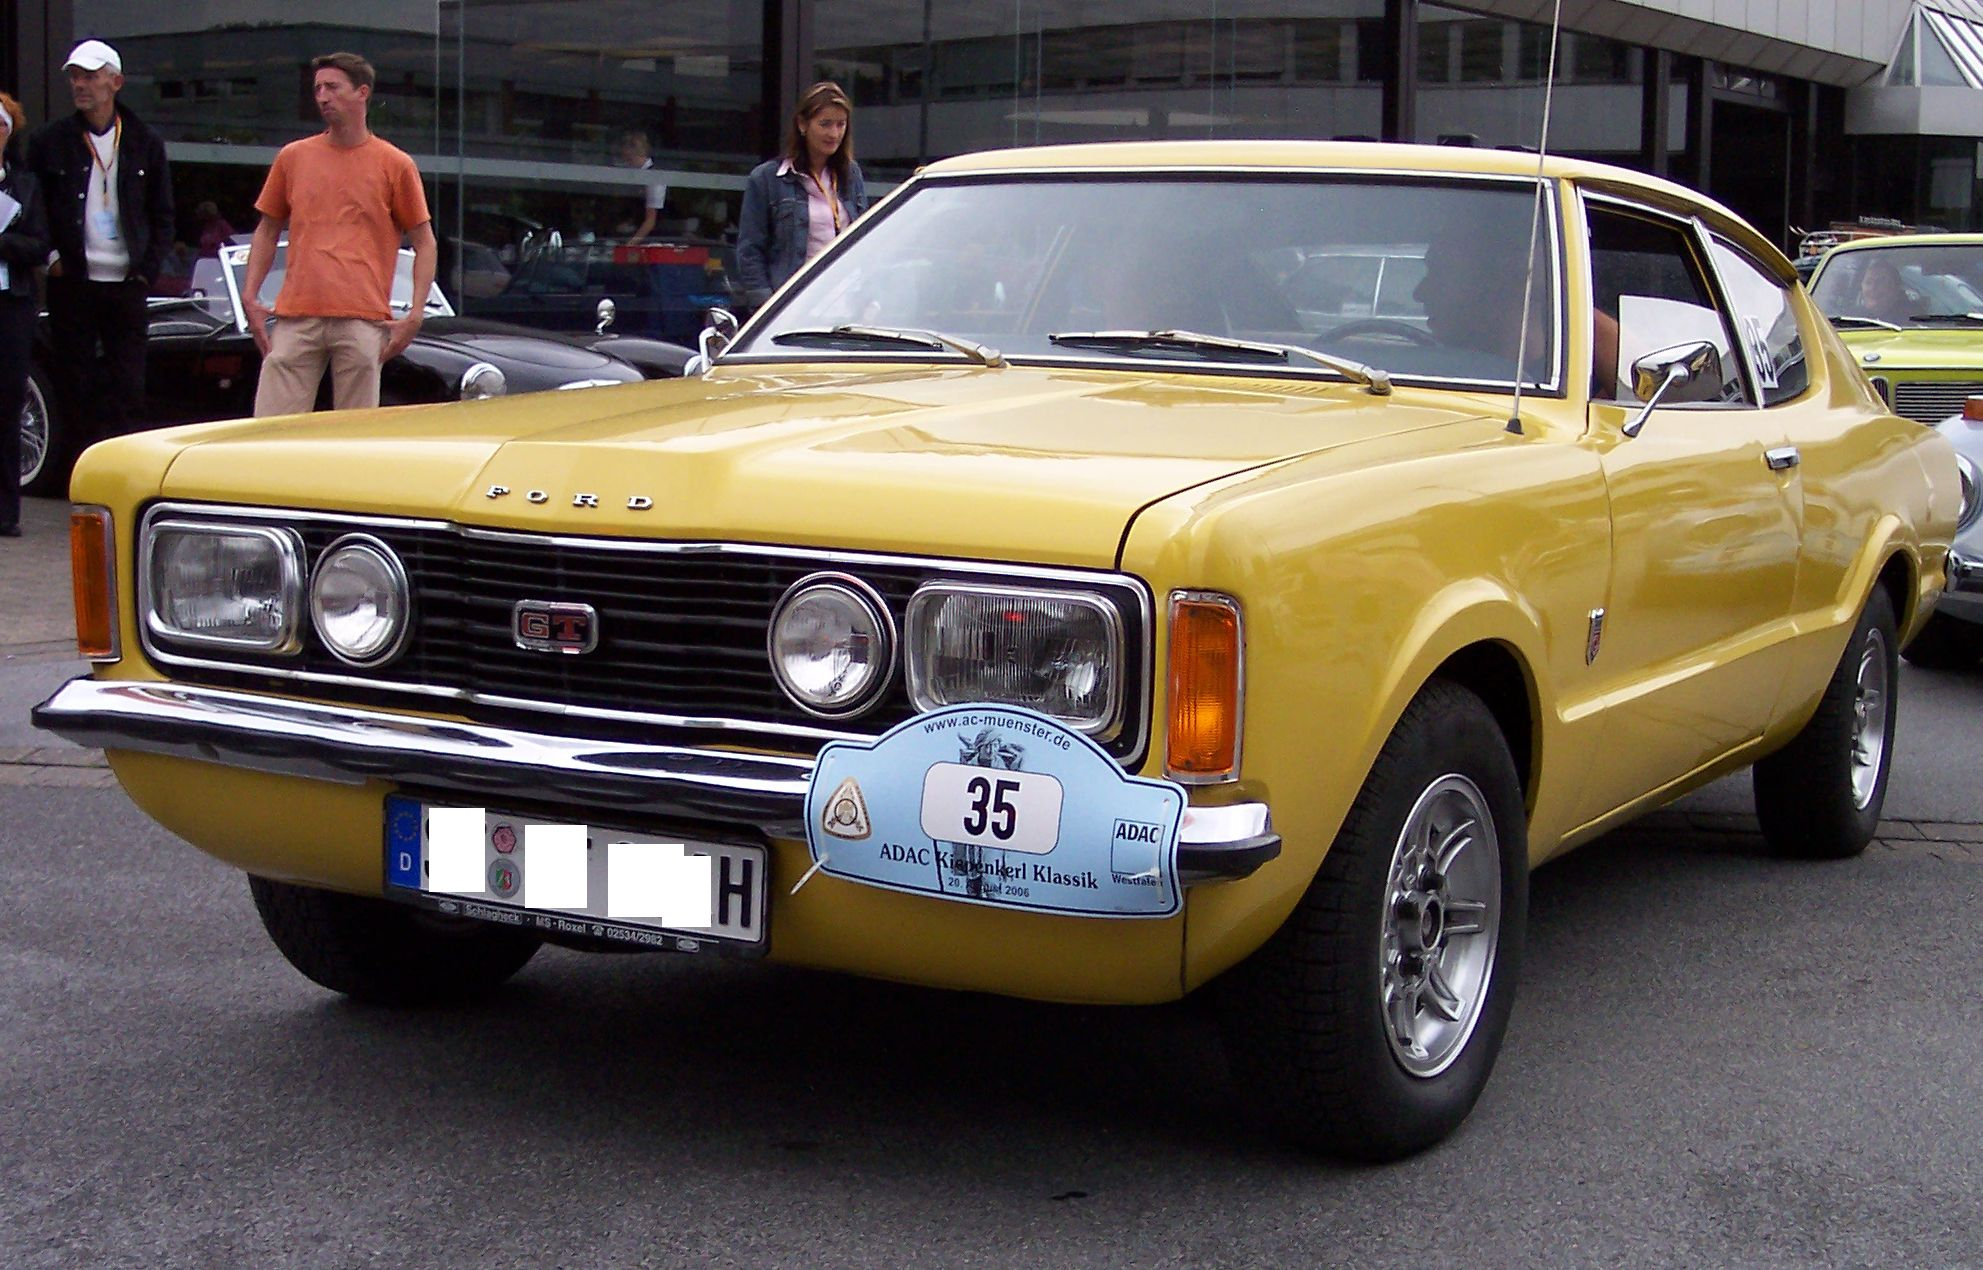 Fileford Taunus Coupe 20 1972 Yellow Vl3 Wikimedia Commons Cadillac Power Window Relay Wiring Diagram